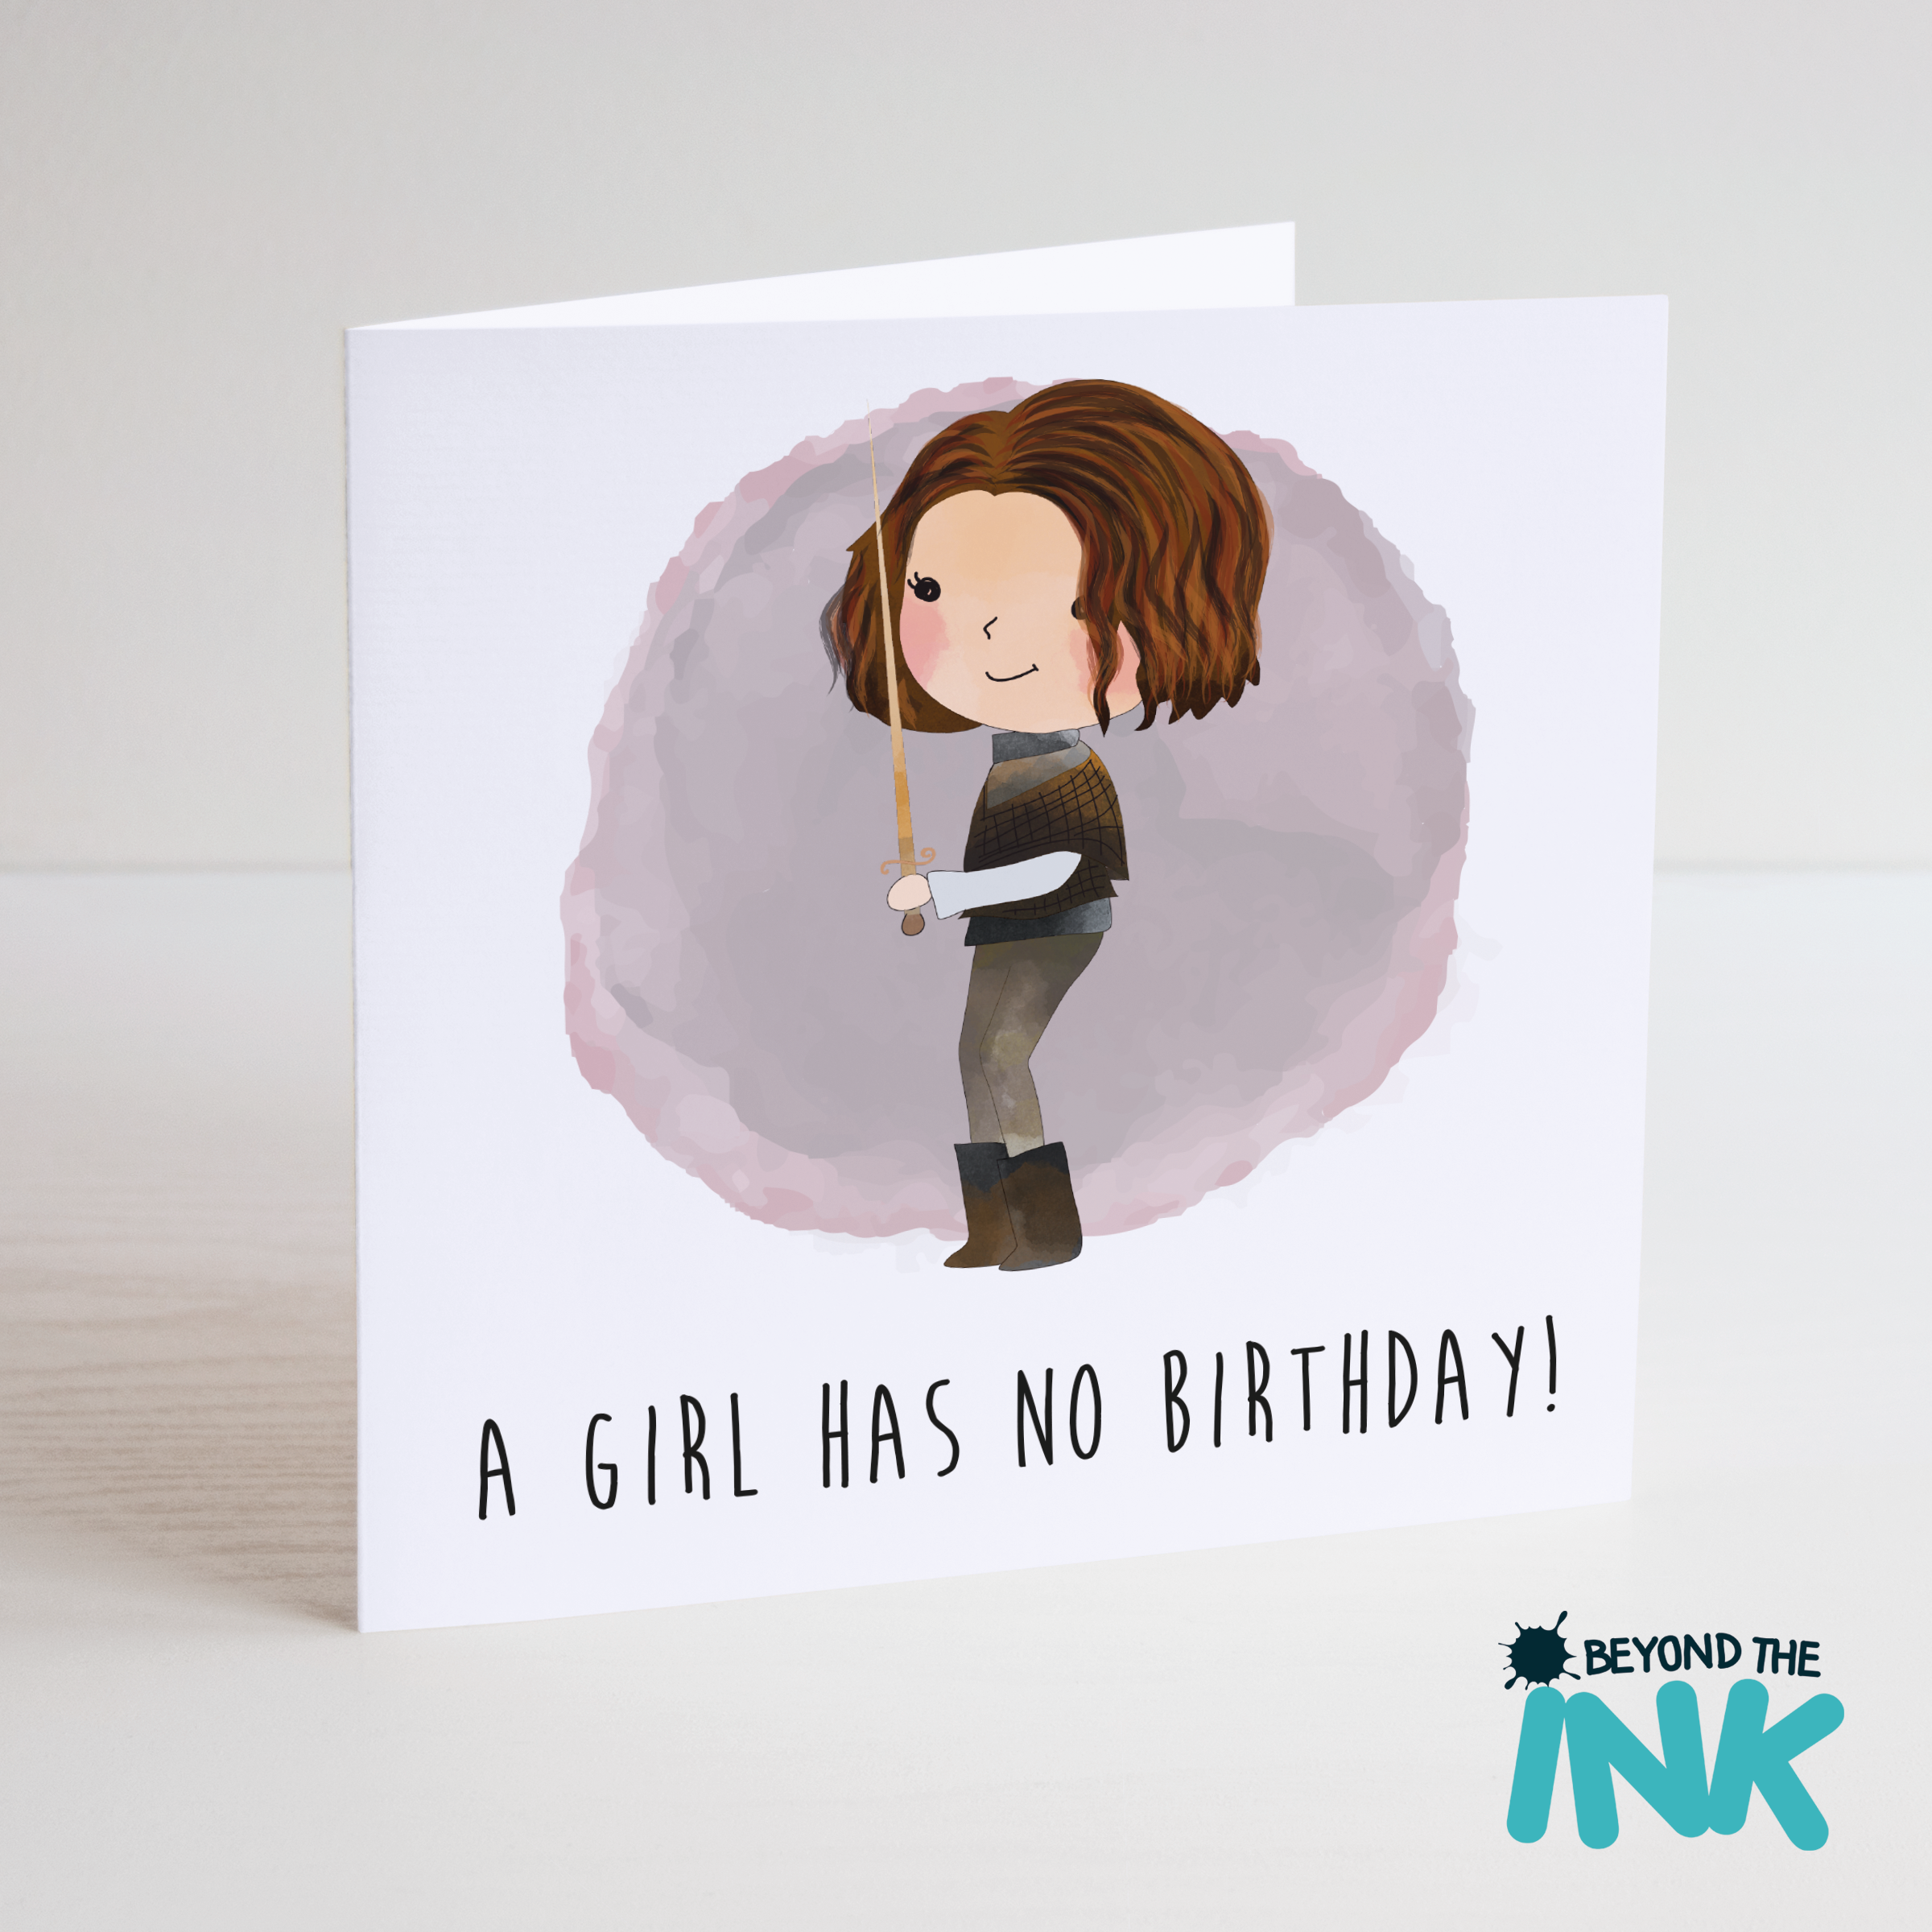 Game of thrones a girl has no birthday card beyond the ink homecardsbirthday cardscharactergame of thronesgame of thrones a girl has no birthday card bookmarktalkfo Image collections